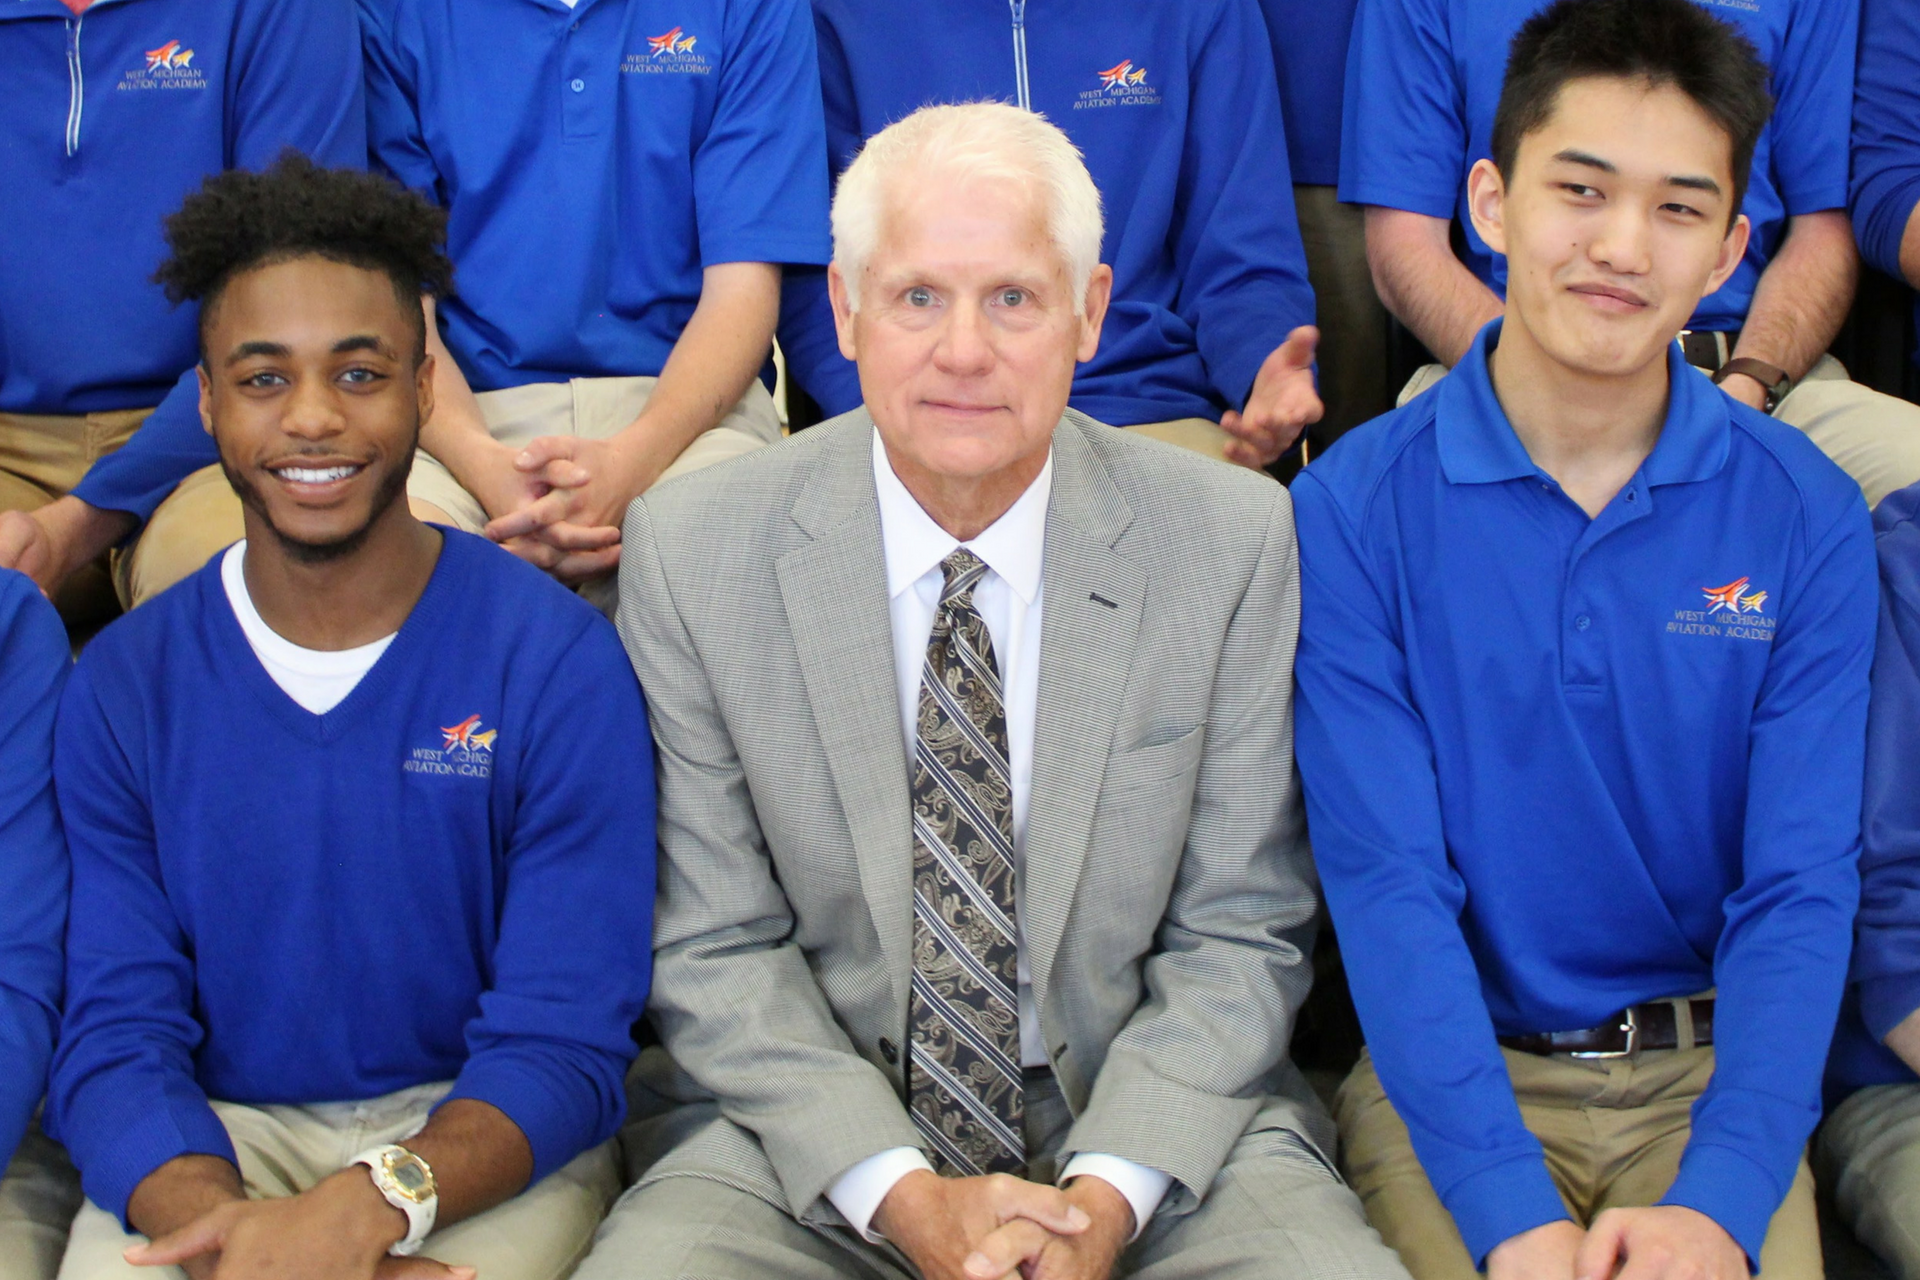 A photo of West Michigan Aviation Academy school leader, and 2018 Charter School Administrator of the Year recipient, Pat Cwayna, surrounded by students at a pep rally.